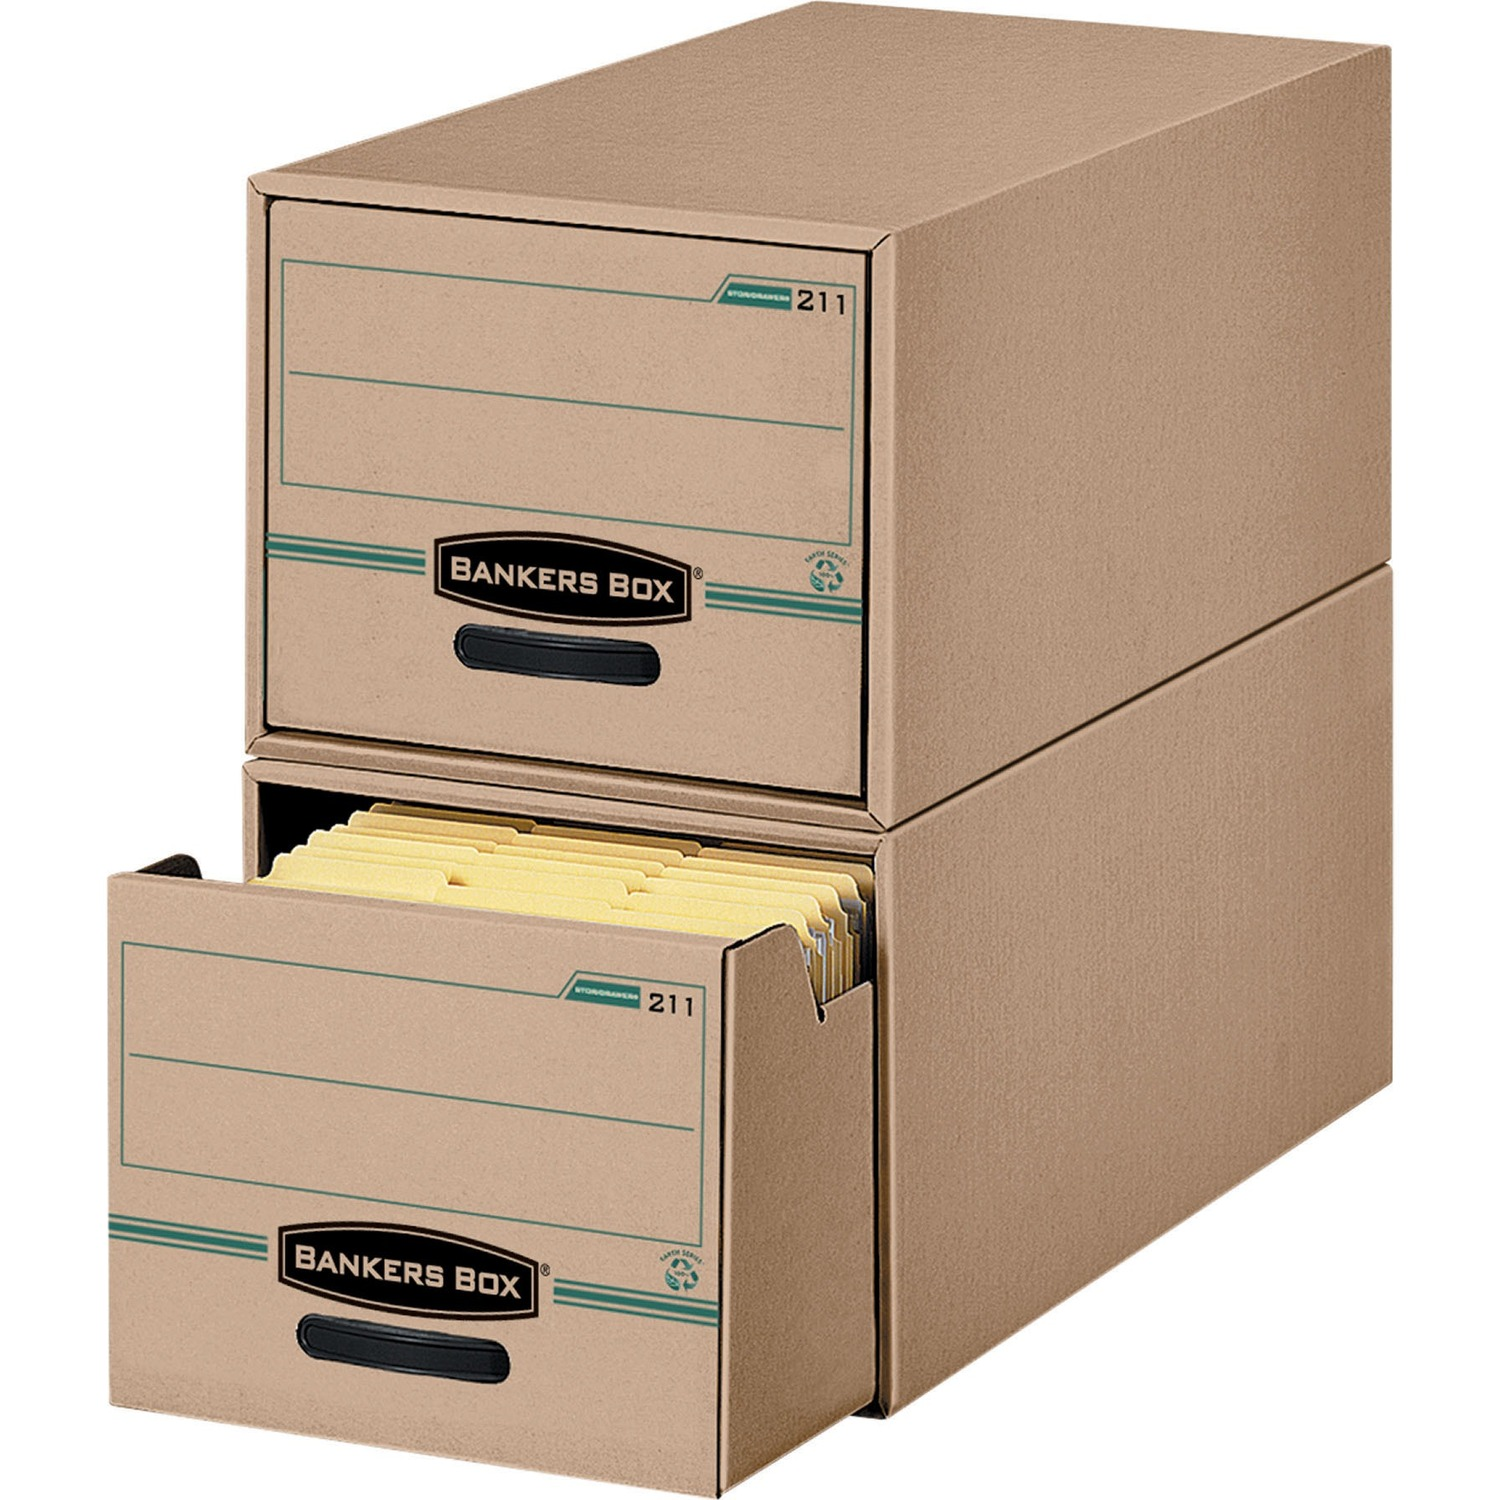 Bankers Box Recycled Stor Drawer Legal Internal Dimensions 15 50 393 70 Mm Width X 23 25 590 55 Depth 10 38 263 52 Height External